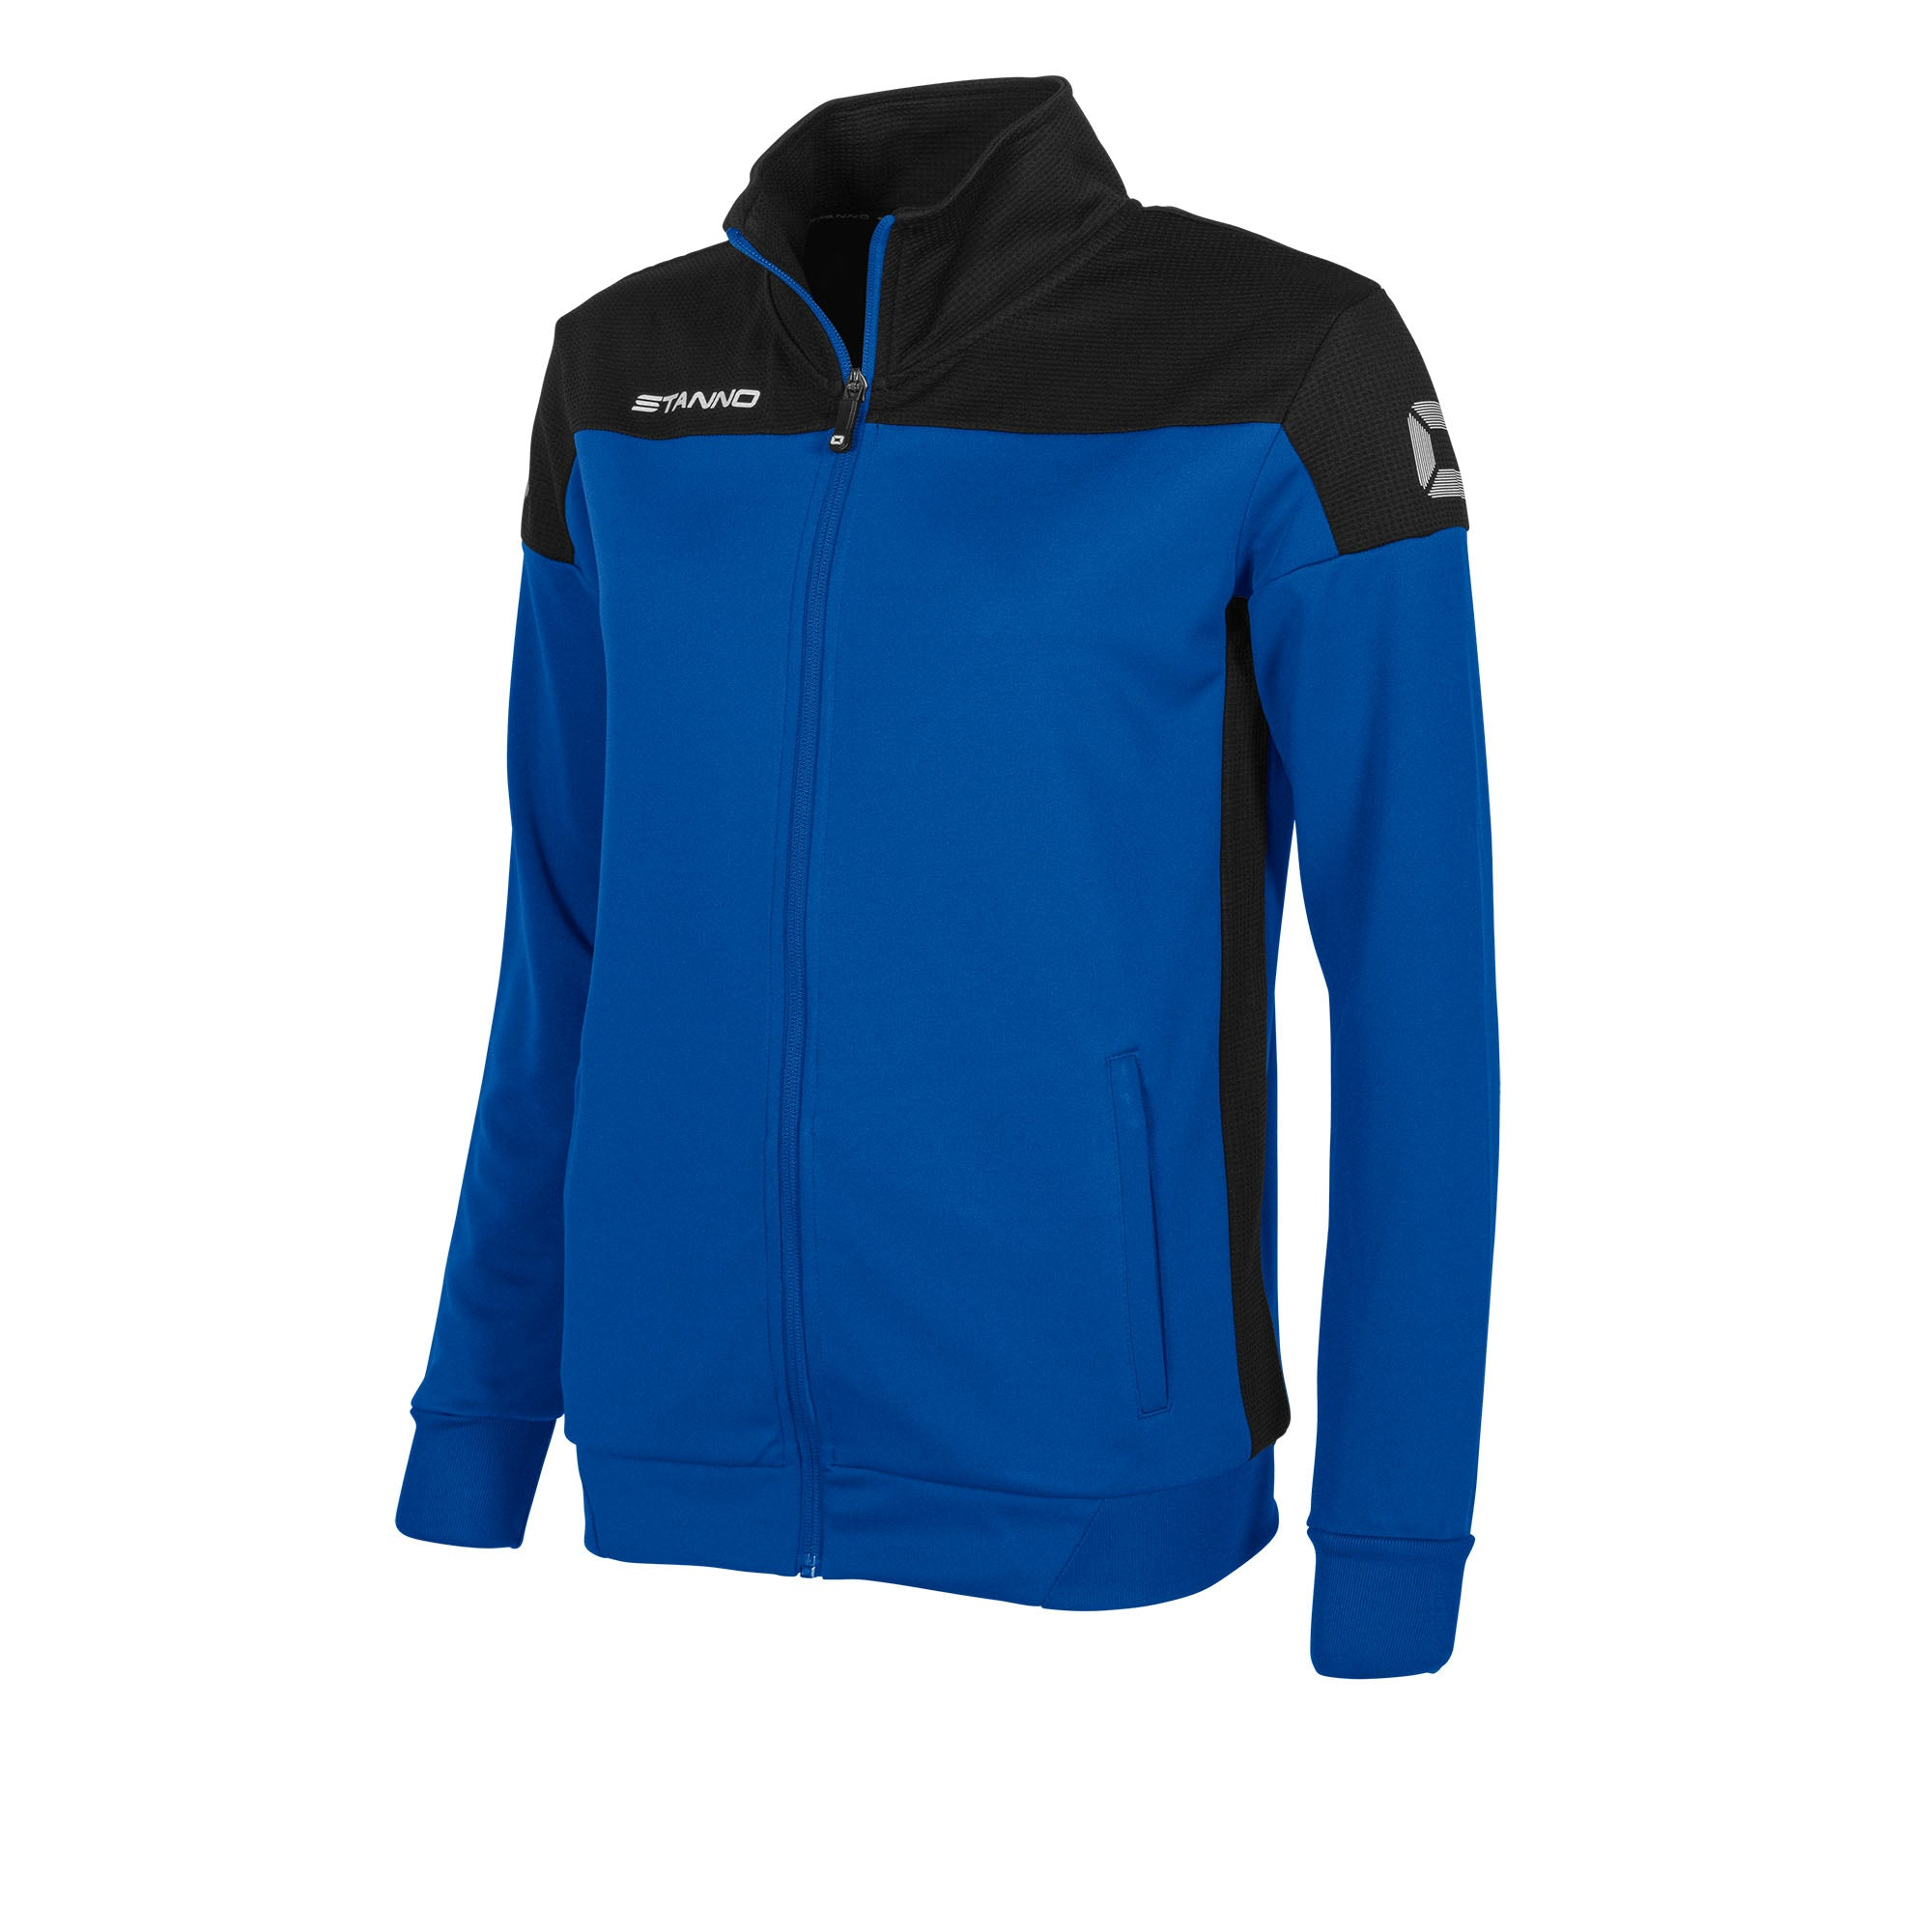 Stanno Pride TTS Jacket Ladies - Royal/Black